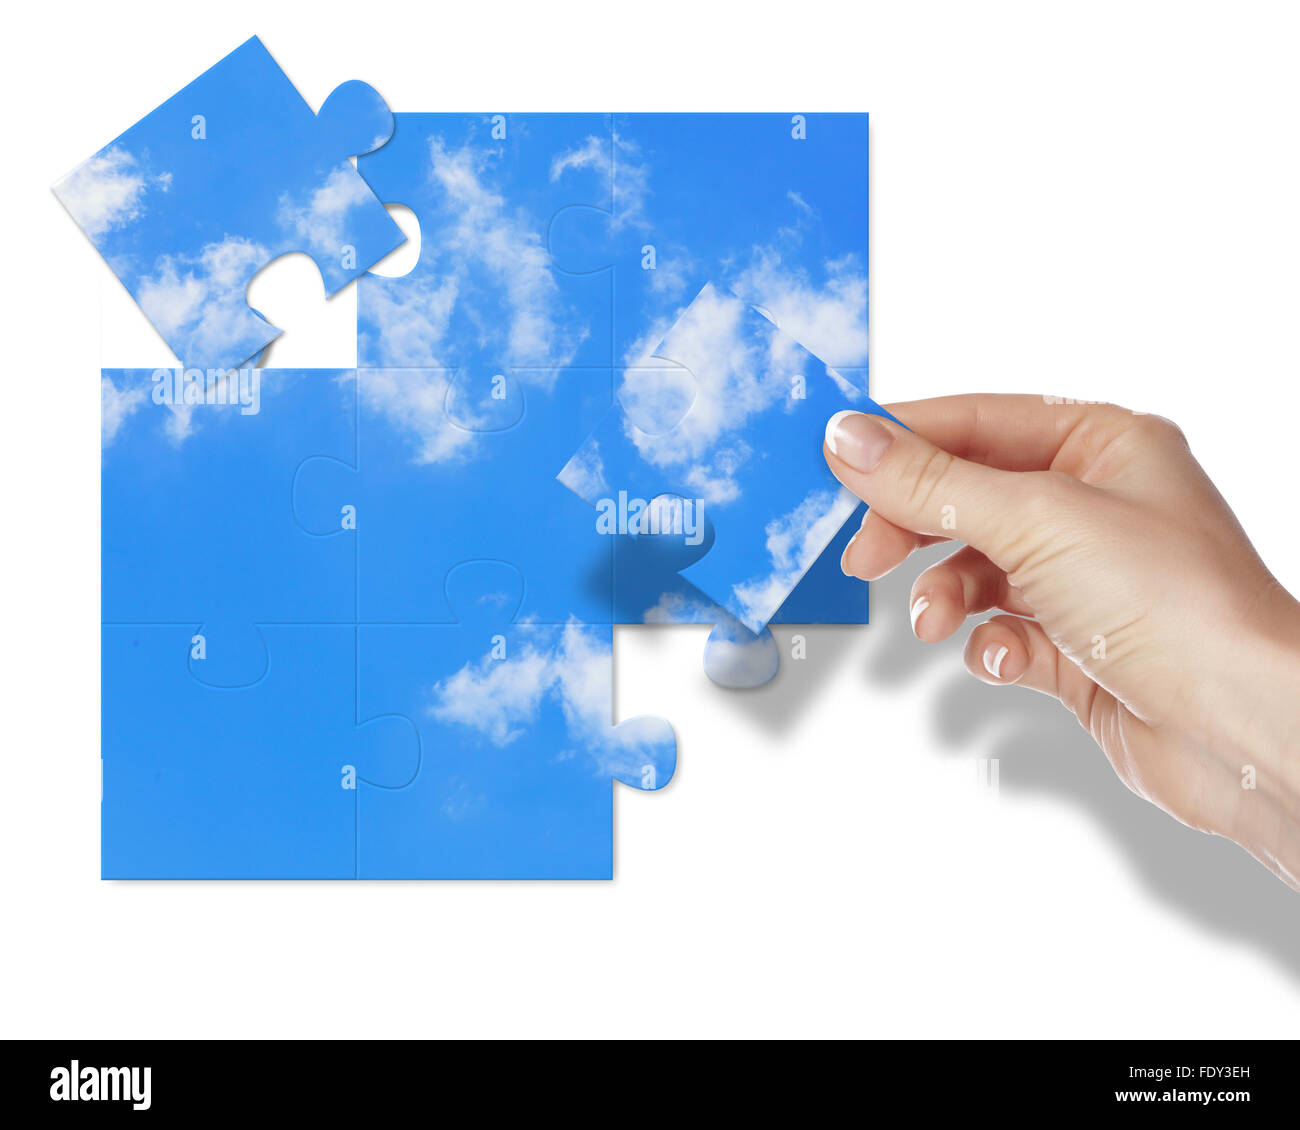 Image of a puzzle with blue sky and white clouds - Stock Image